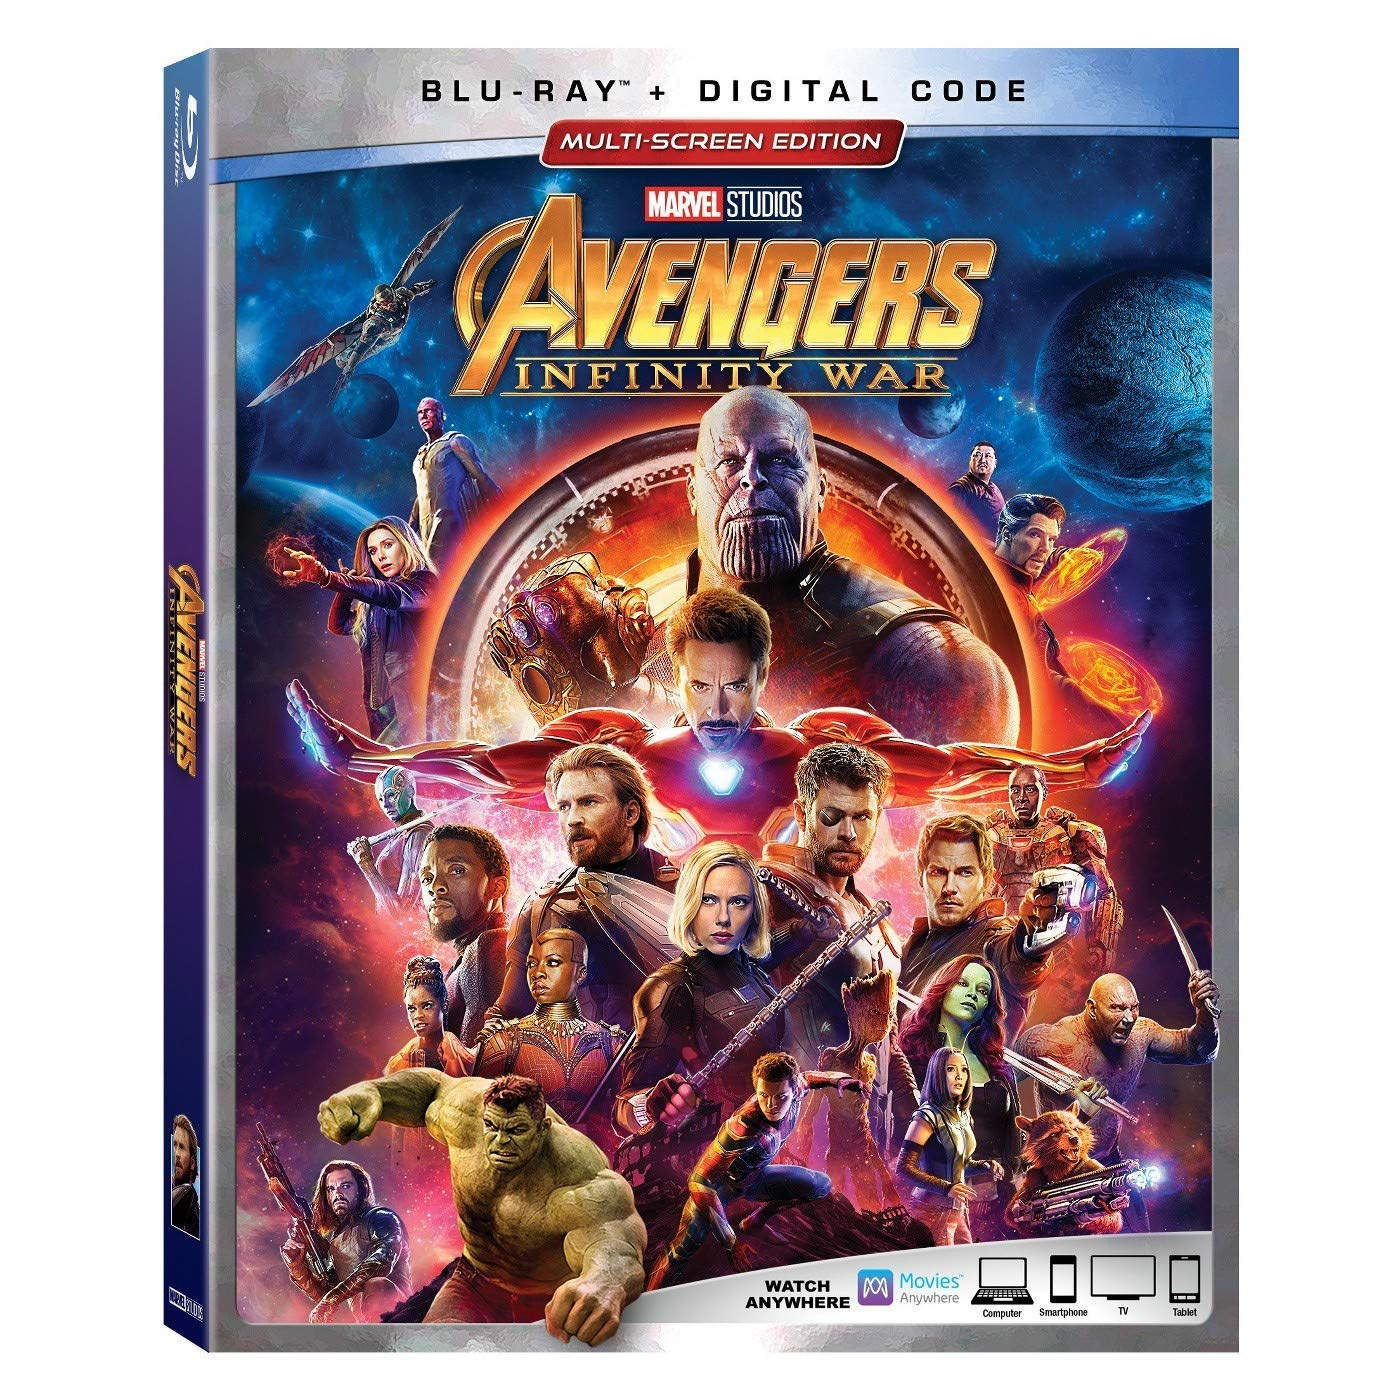 Avengers: Infinity War [Blu-ray] (Bilingual) Robert Downey Jr. Chris Hemsworth Mark Ruffalo Chris Evans